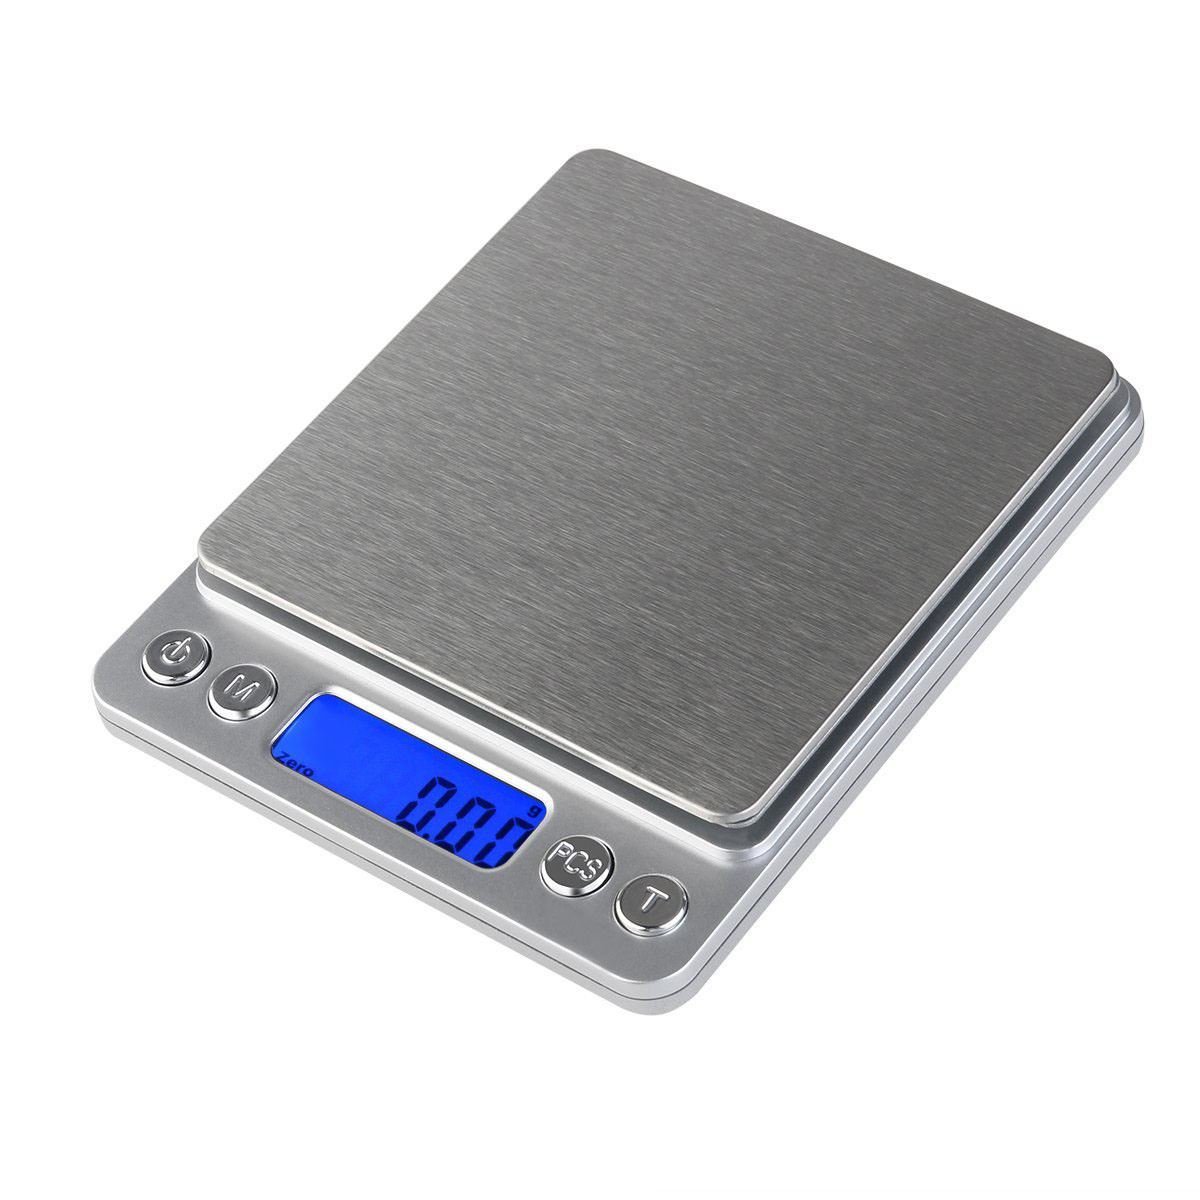 2017 Popular Design Digital Jewelry Pocket Scale